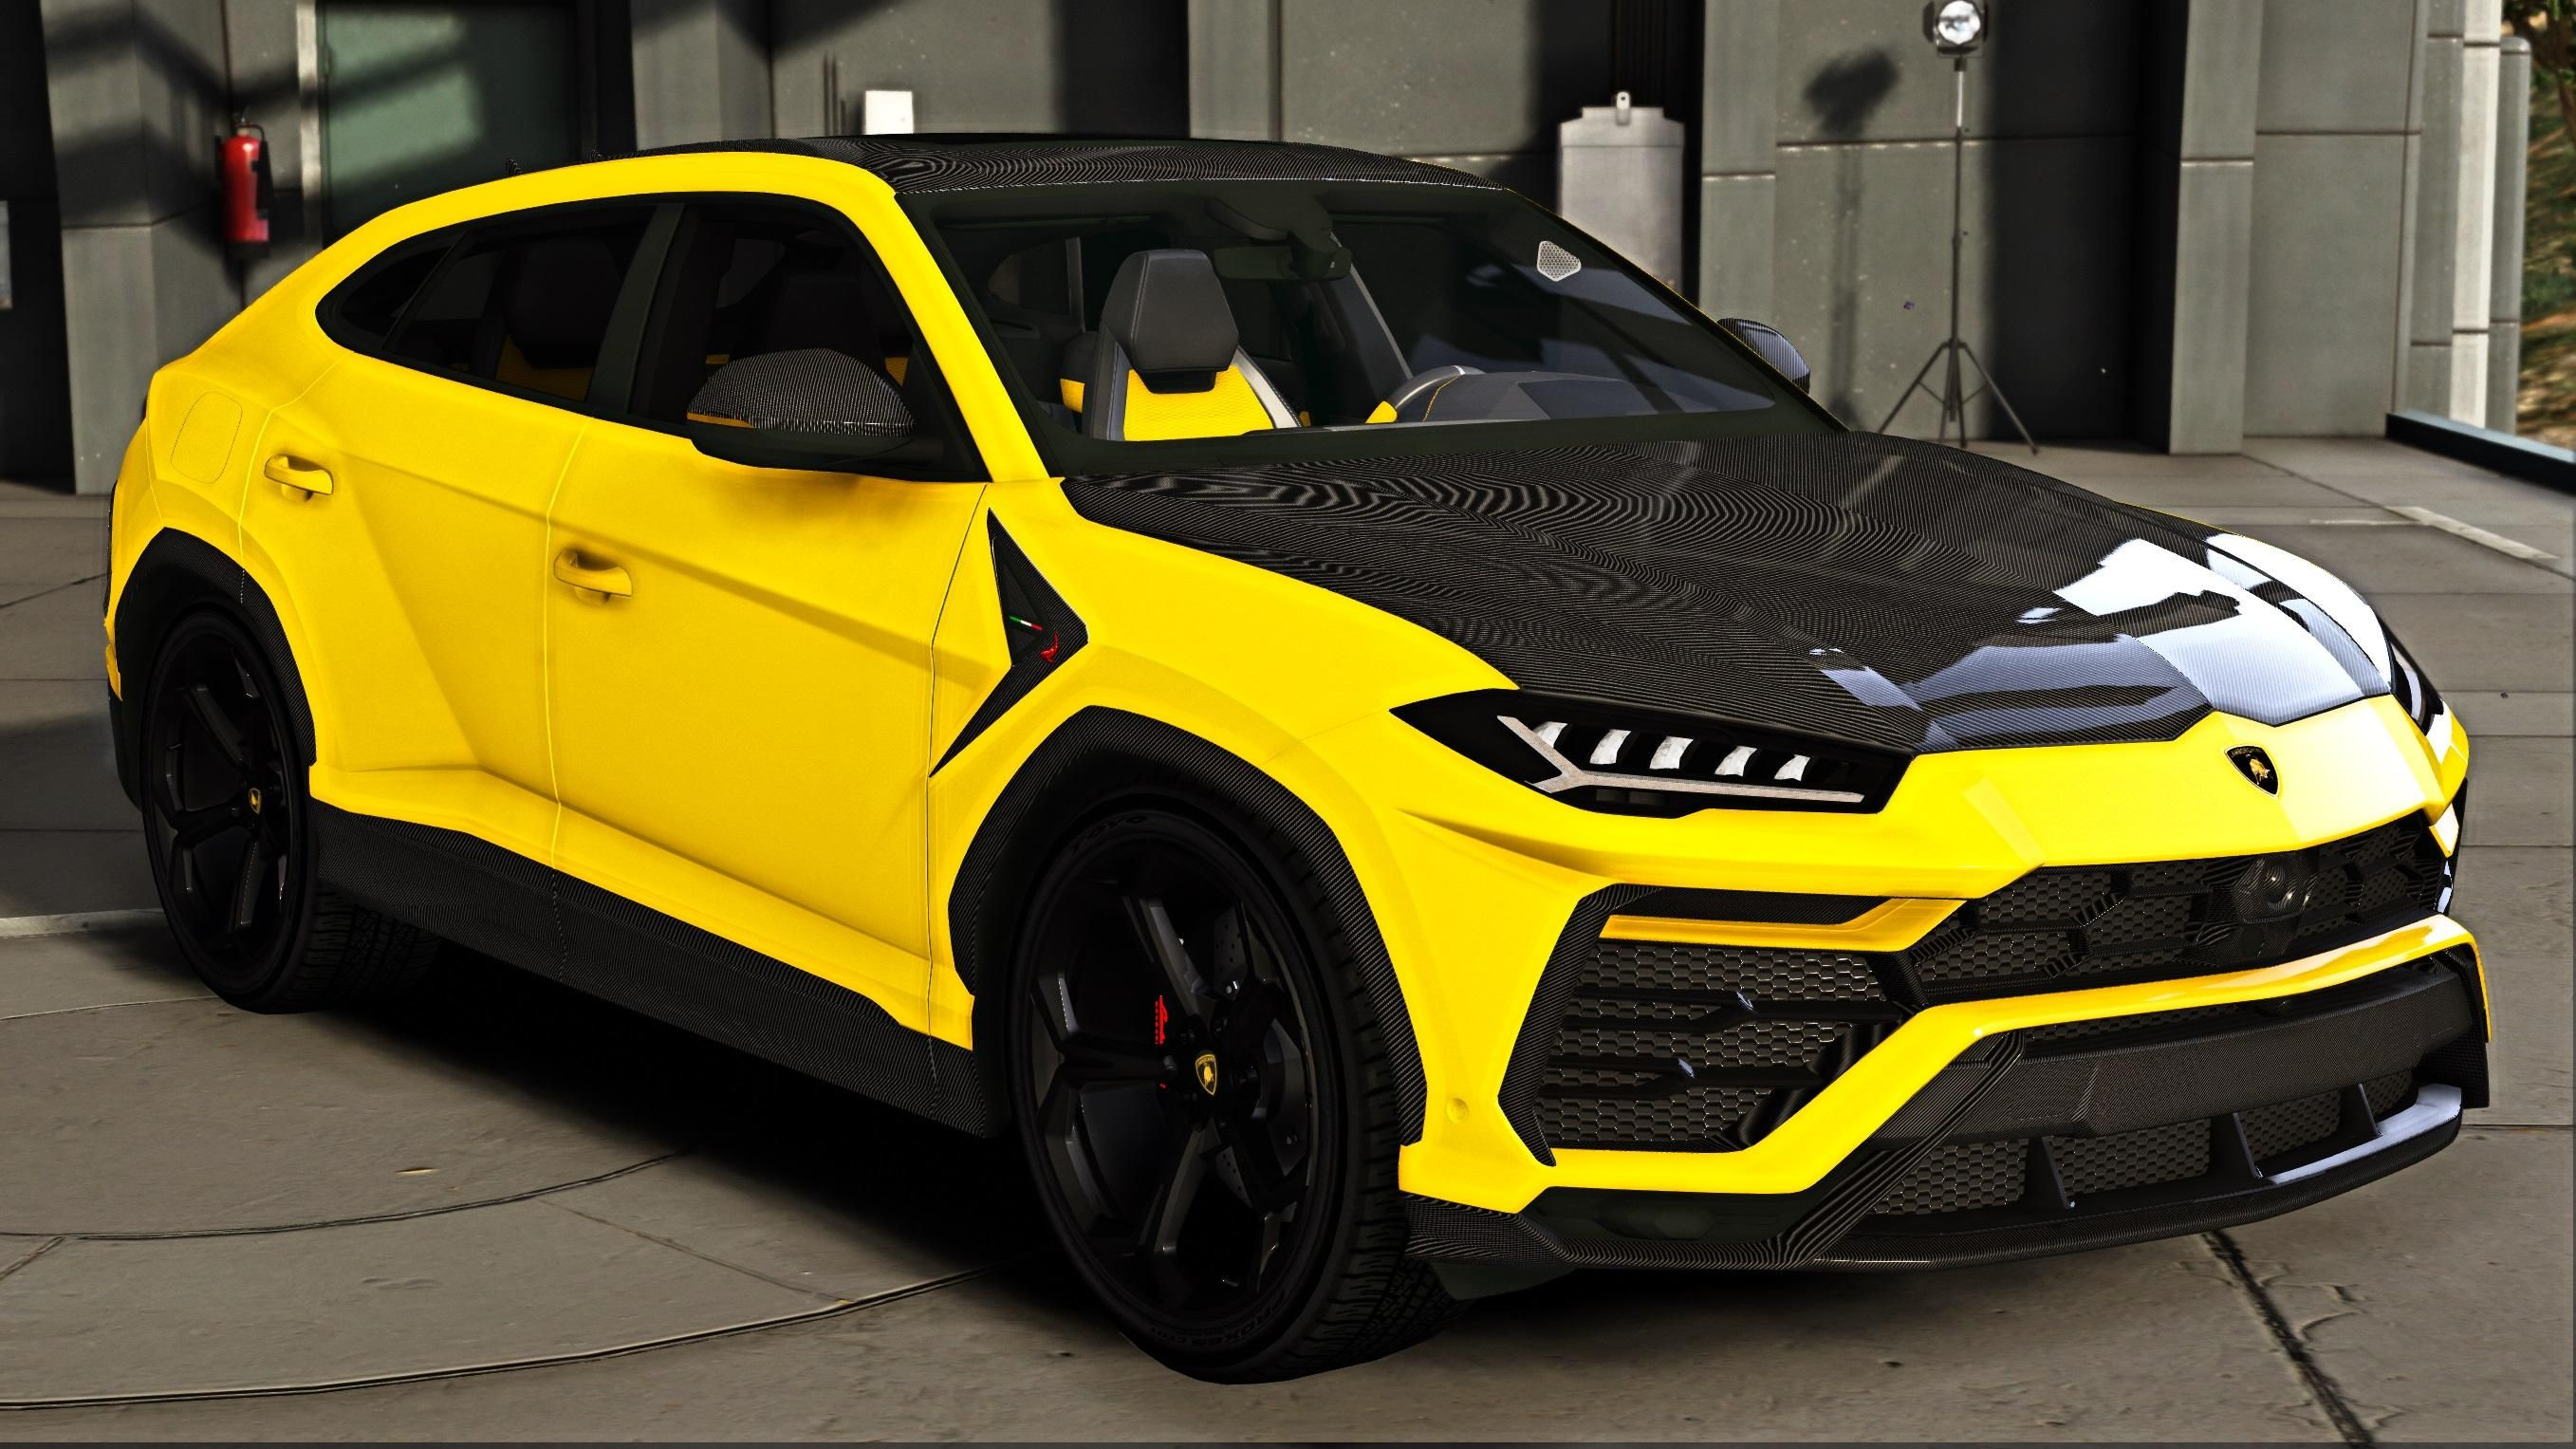 Pin By Ibrahim Azzam On Suv Sport Super Cars Dream Cars Jeep